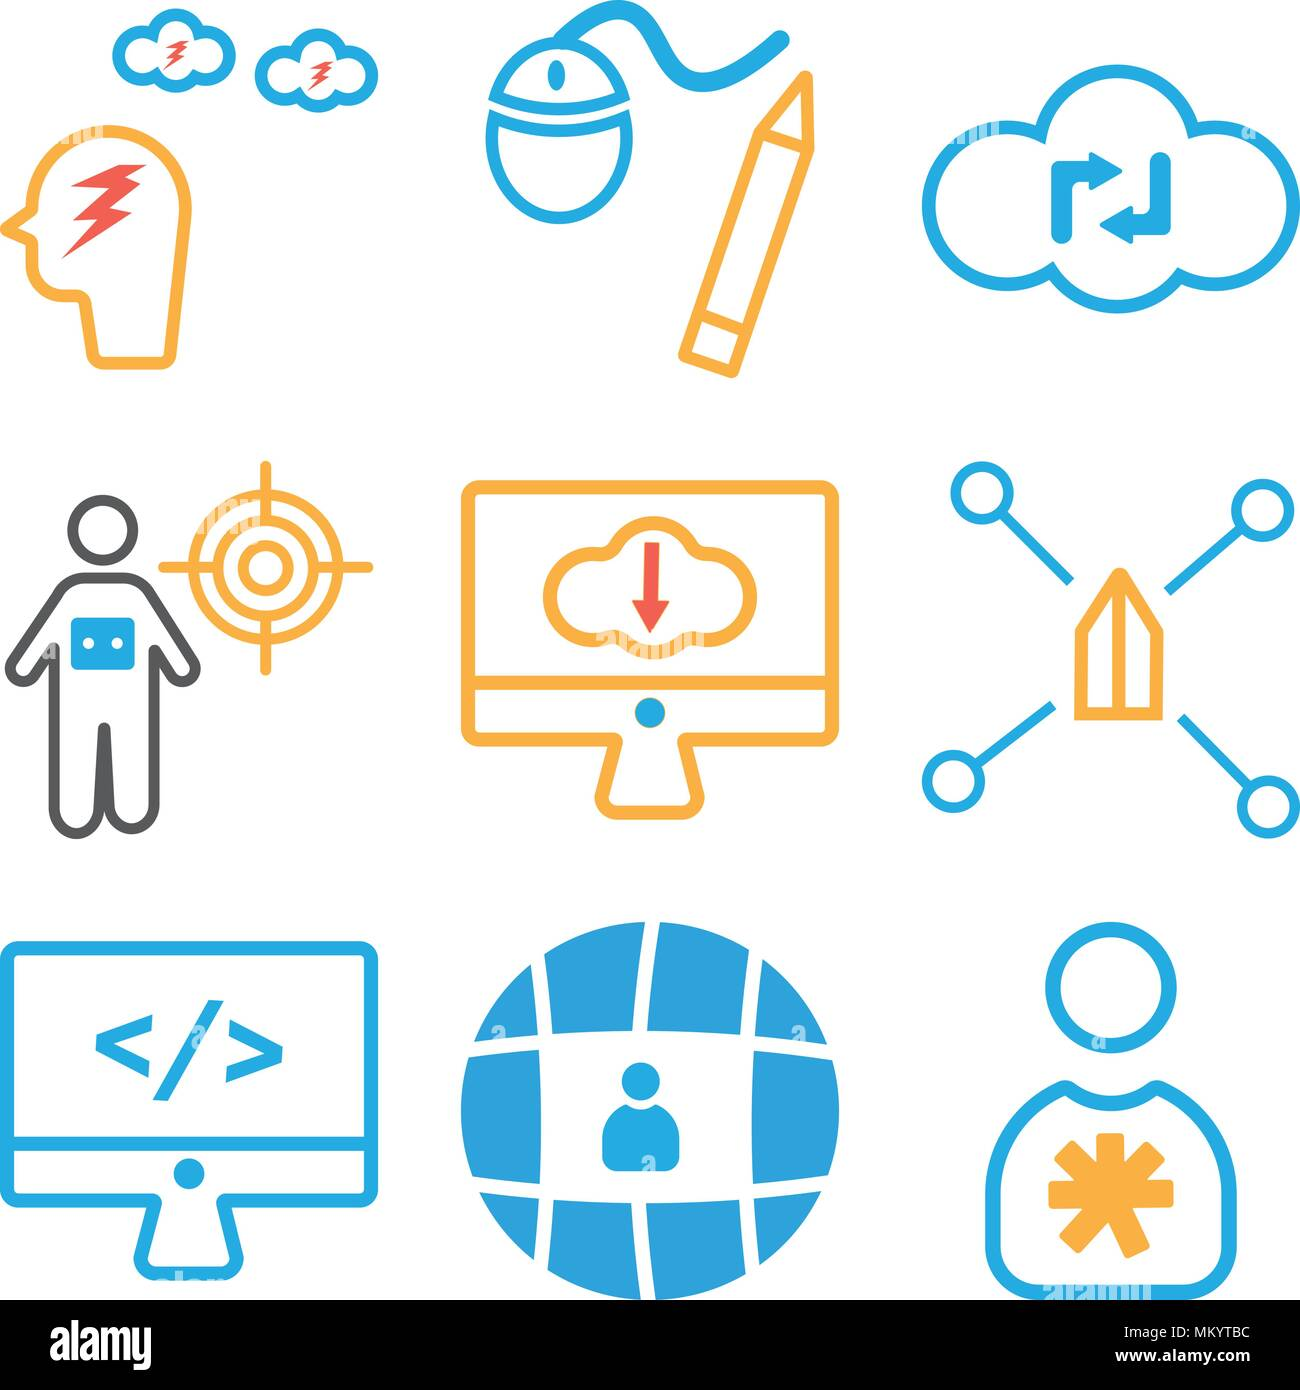 Set Of 9 simple editable icons such as User, Network, Monitor, Team, Cloud computing, Graphic tool, Brainstorming, can be used for mobile, web Stock Vector